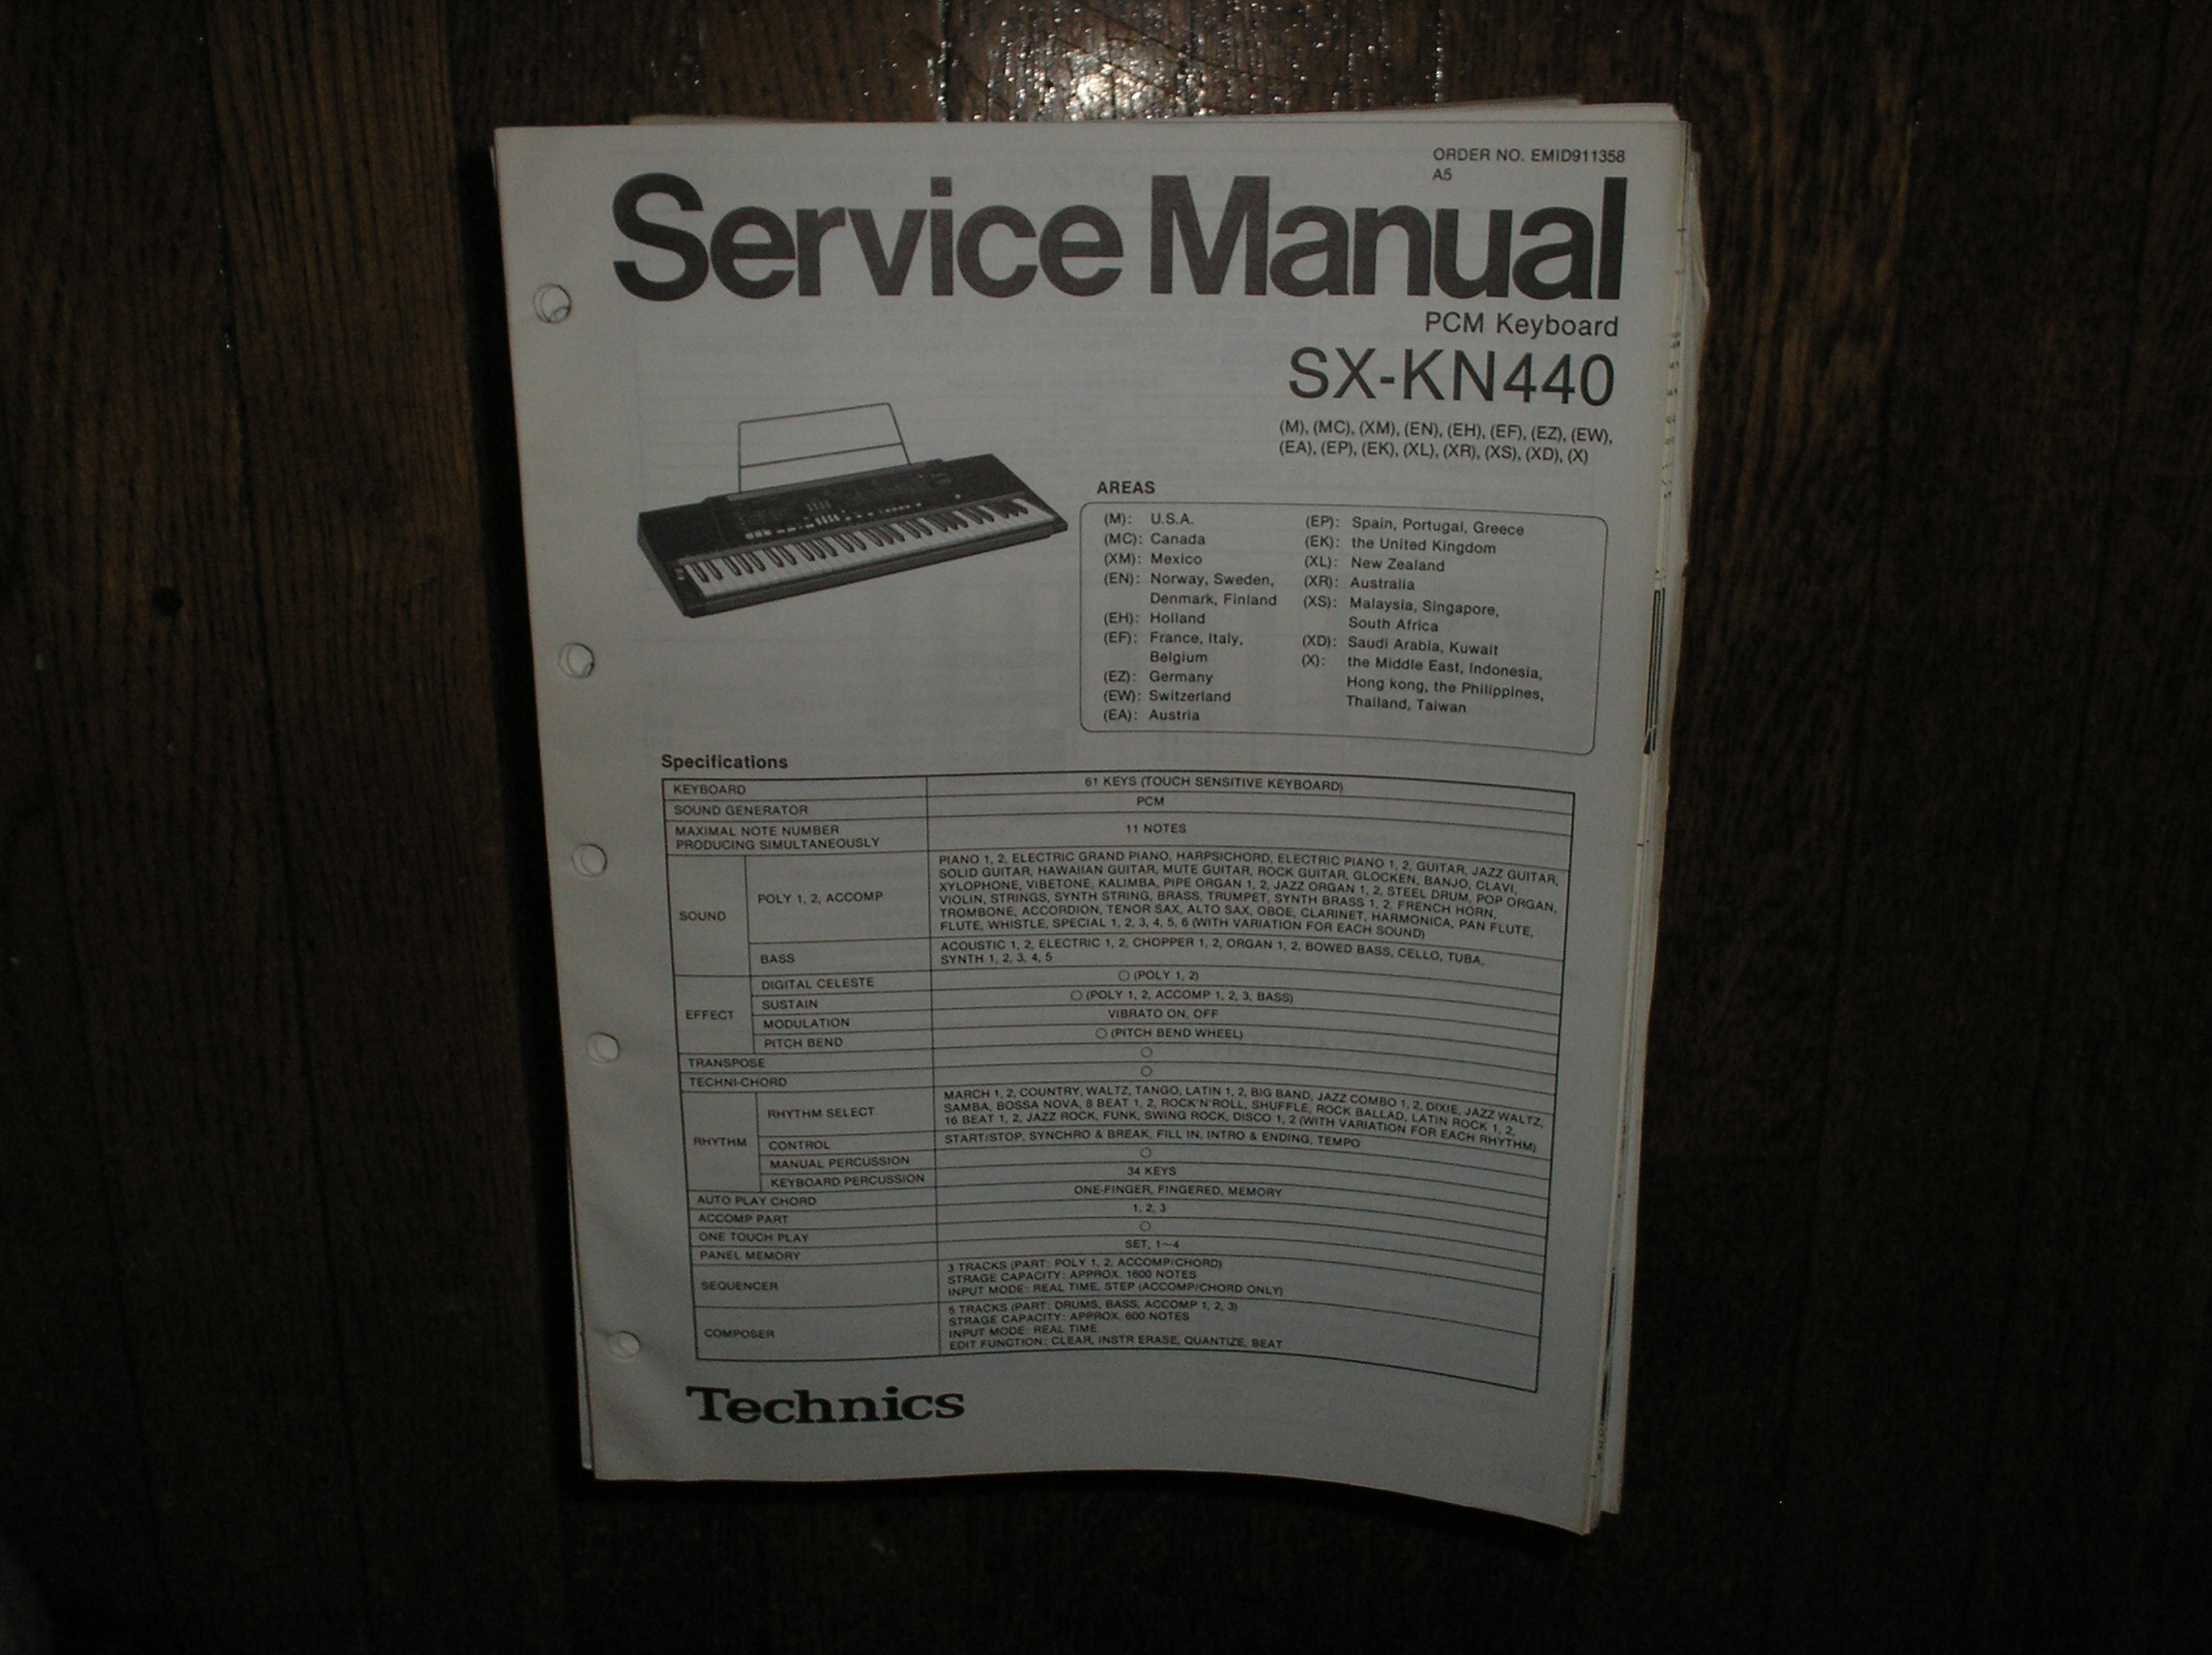 SX-KN440 PCM Keyboard Service Manual